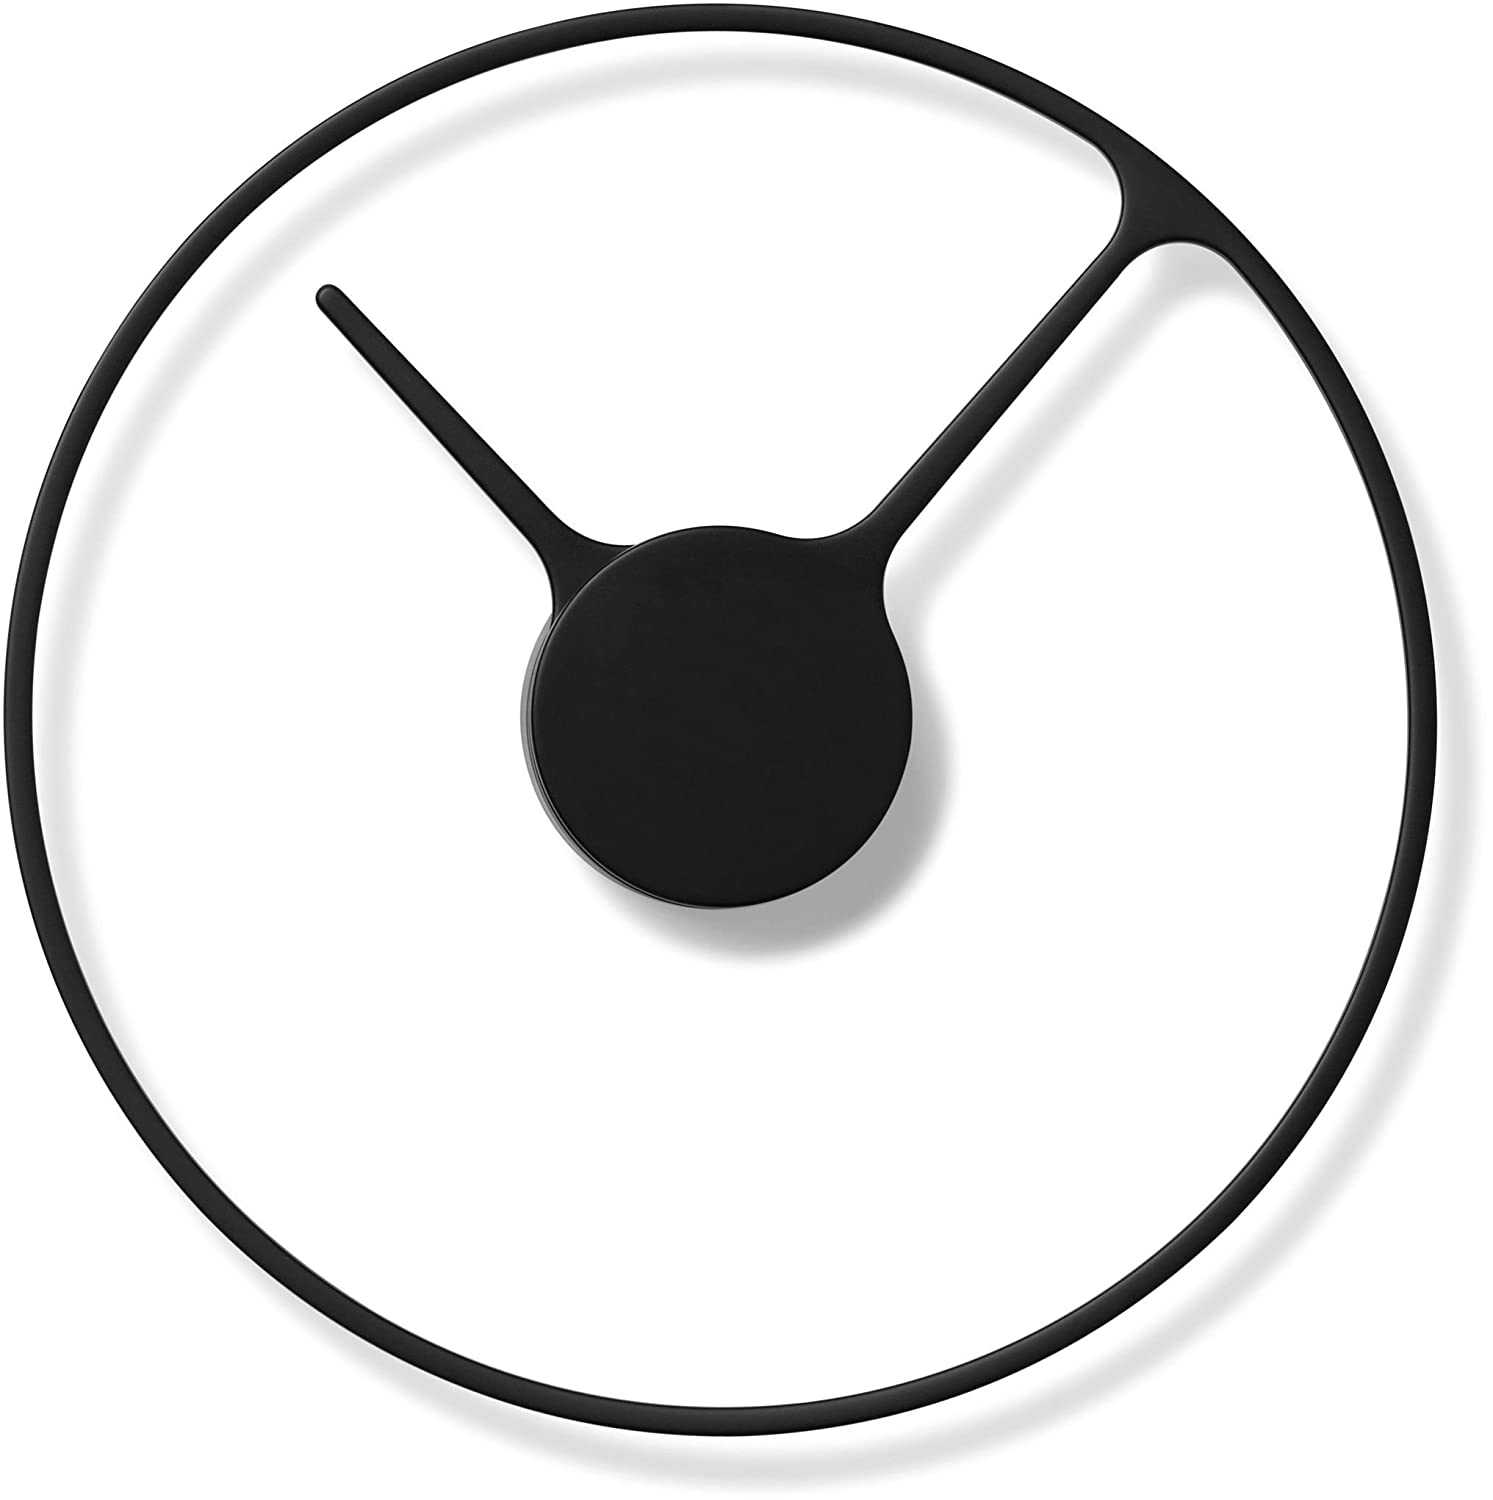 Buy Stelton Time wall clock by Stelton